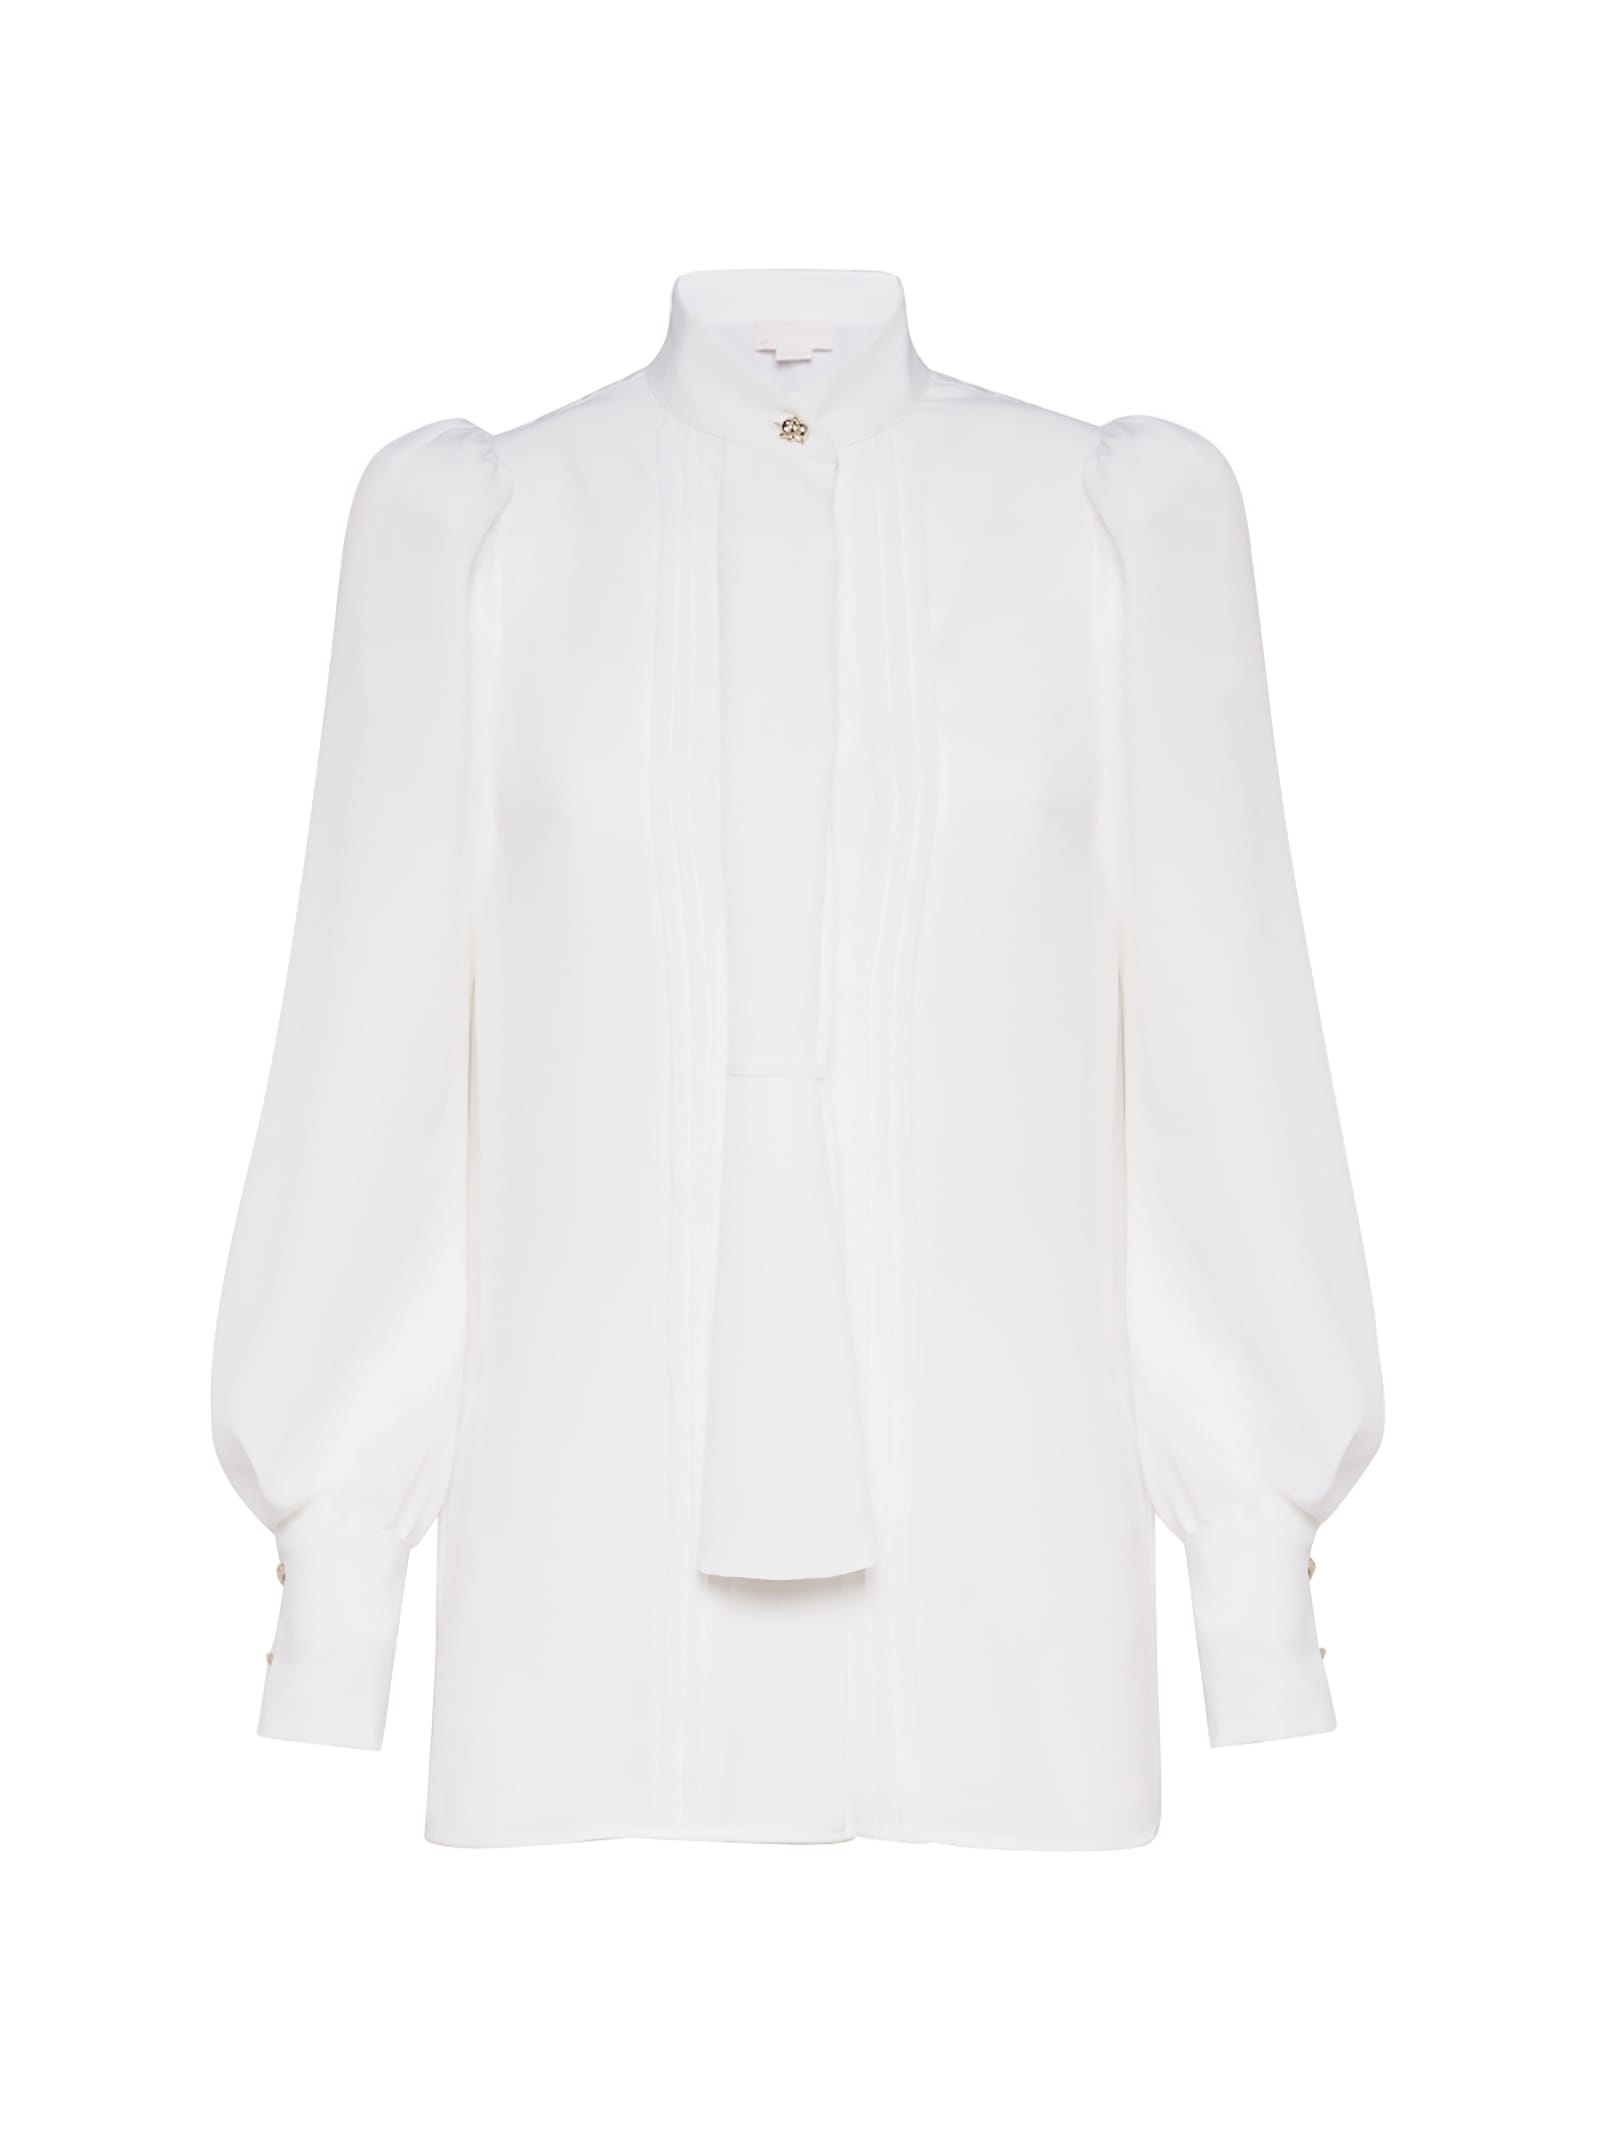 White Crinkled Shirt With Puffball Sleeves